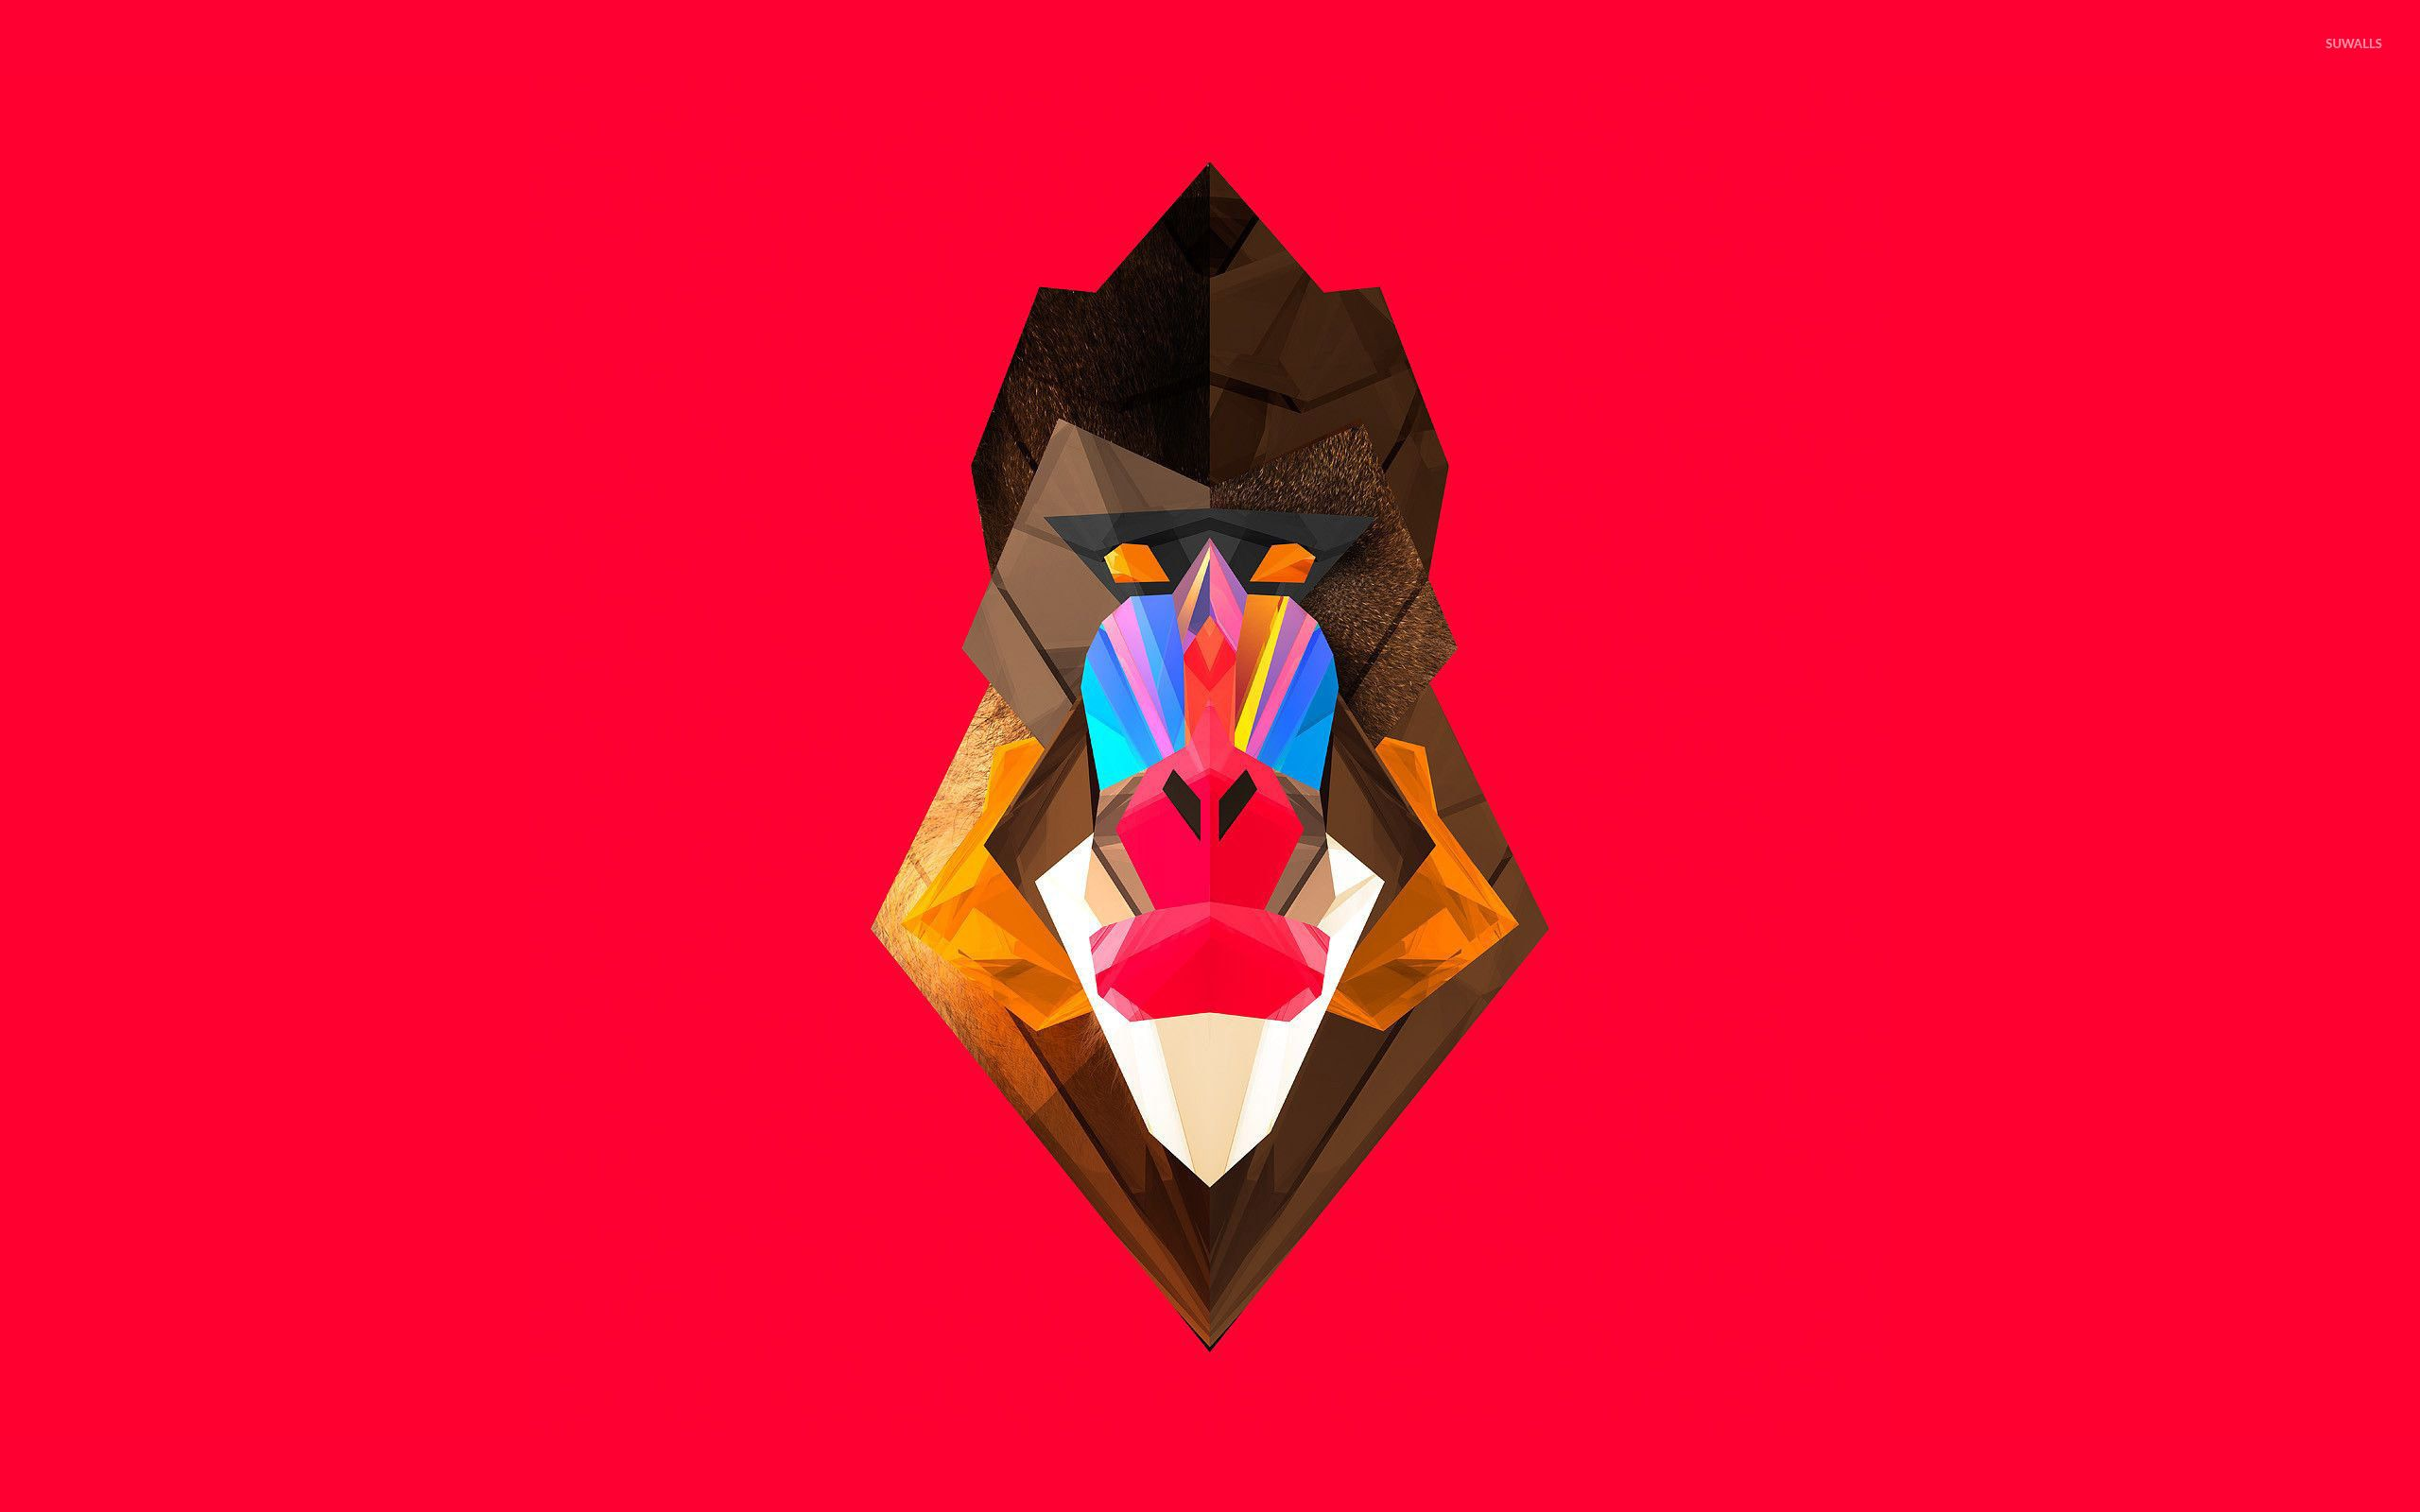 Polygon baboon wallpaper - Vector wallpapers - #28703